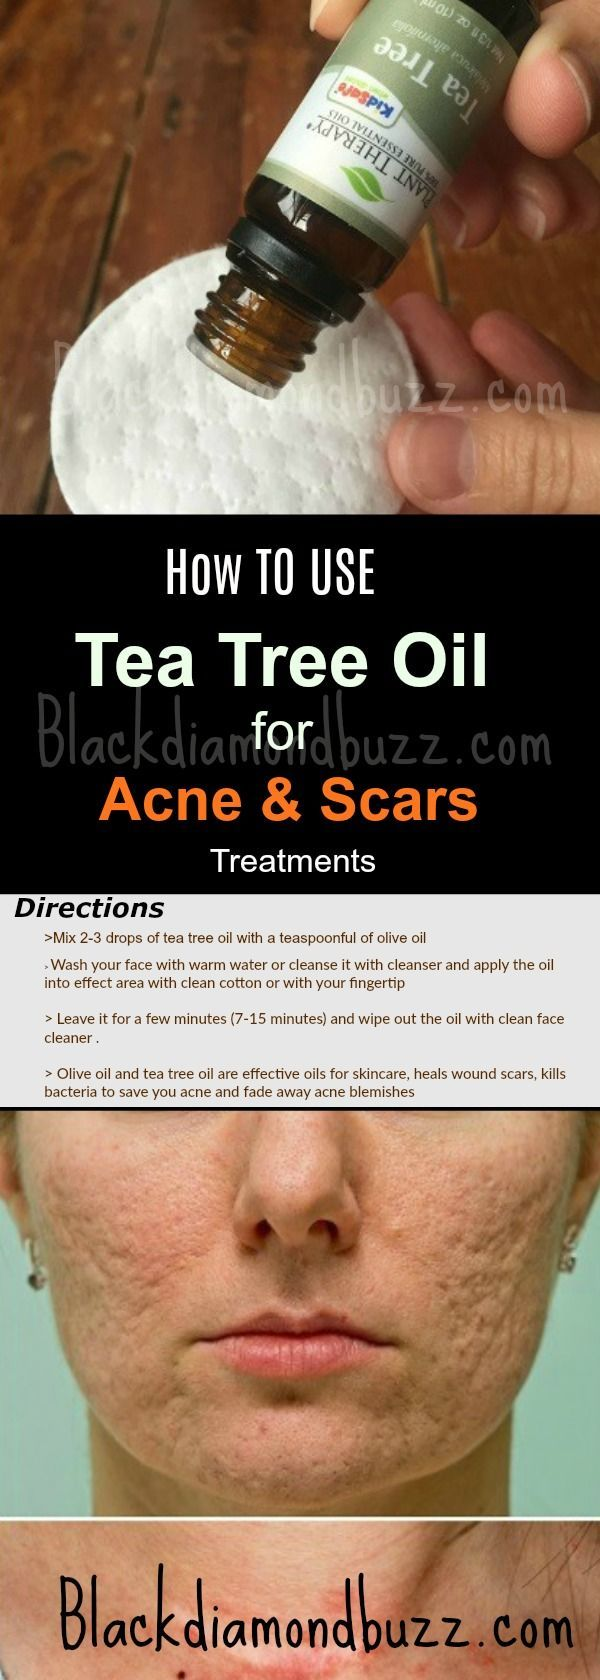 How to use Tea Tree for Acne and Scars Treatments at Home